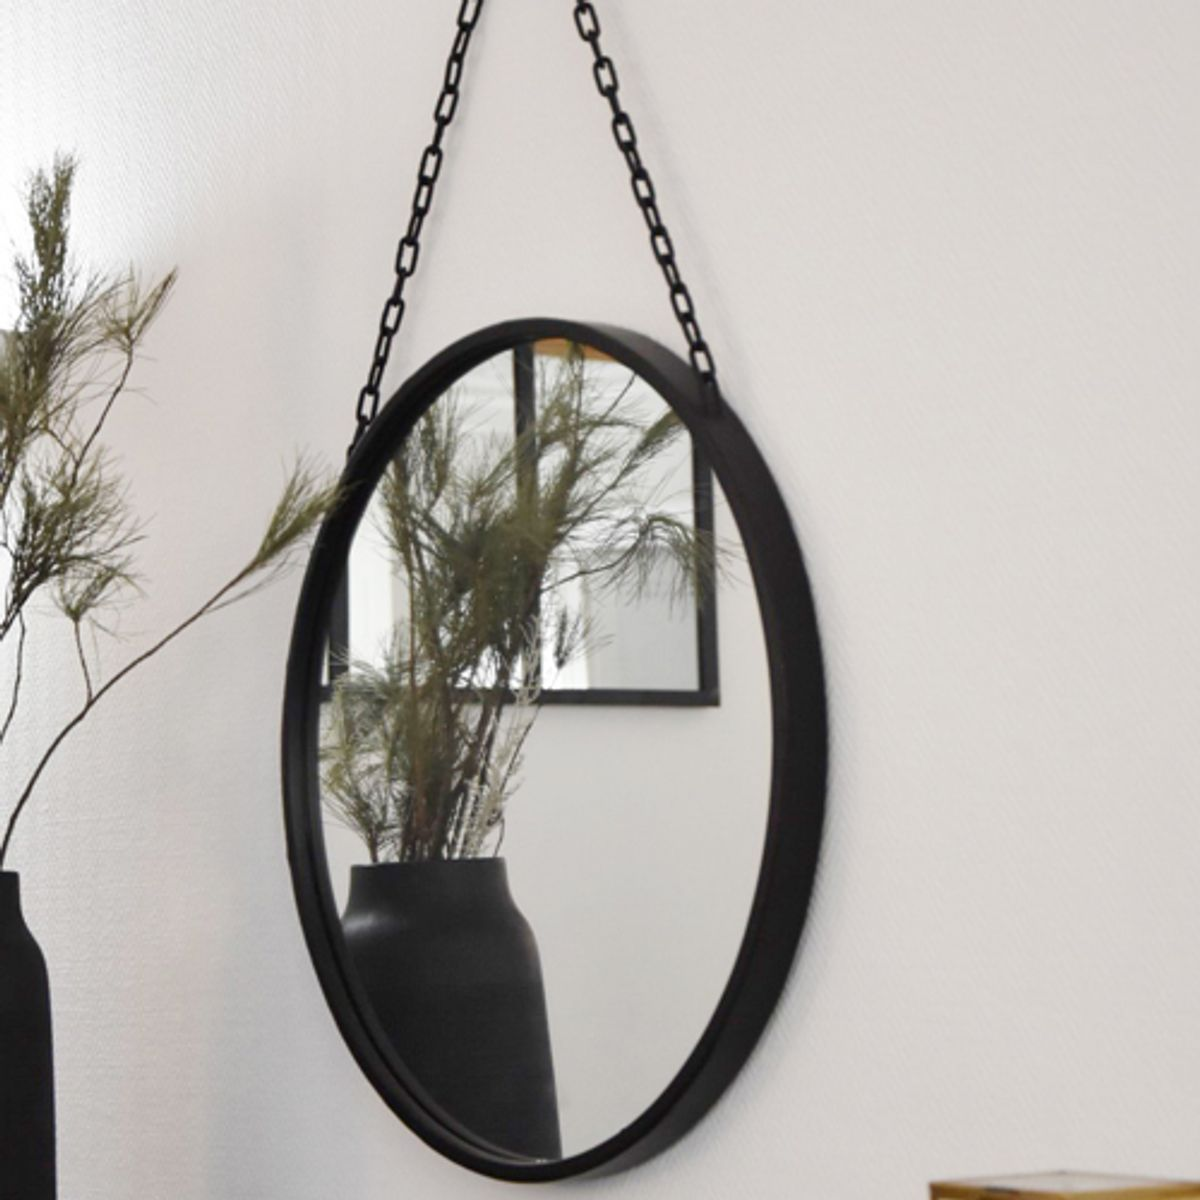 miroir en metal noir 3 miroirs en m tal noir devon maisons du monde miroir en m tal noir h. Black Bedroom Furniture Sets. Home Design Ideas